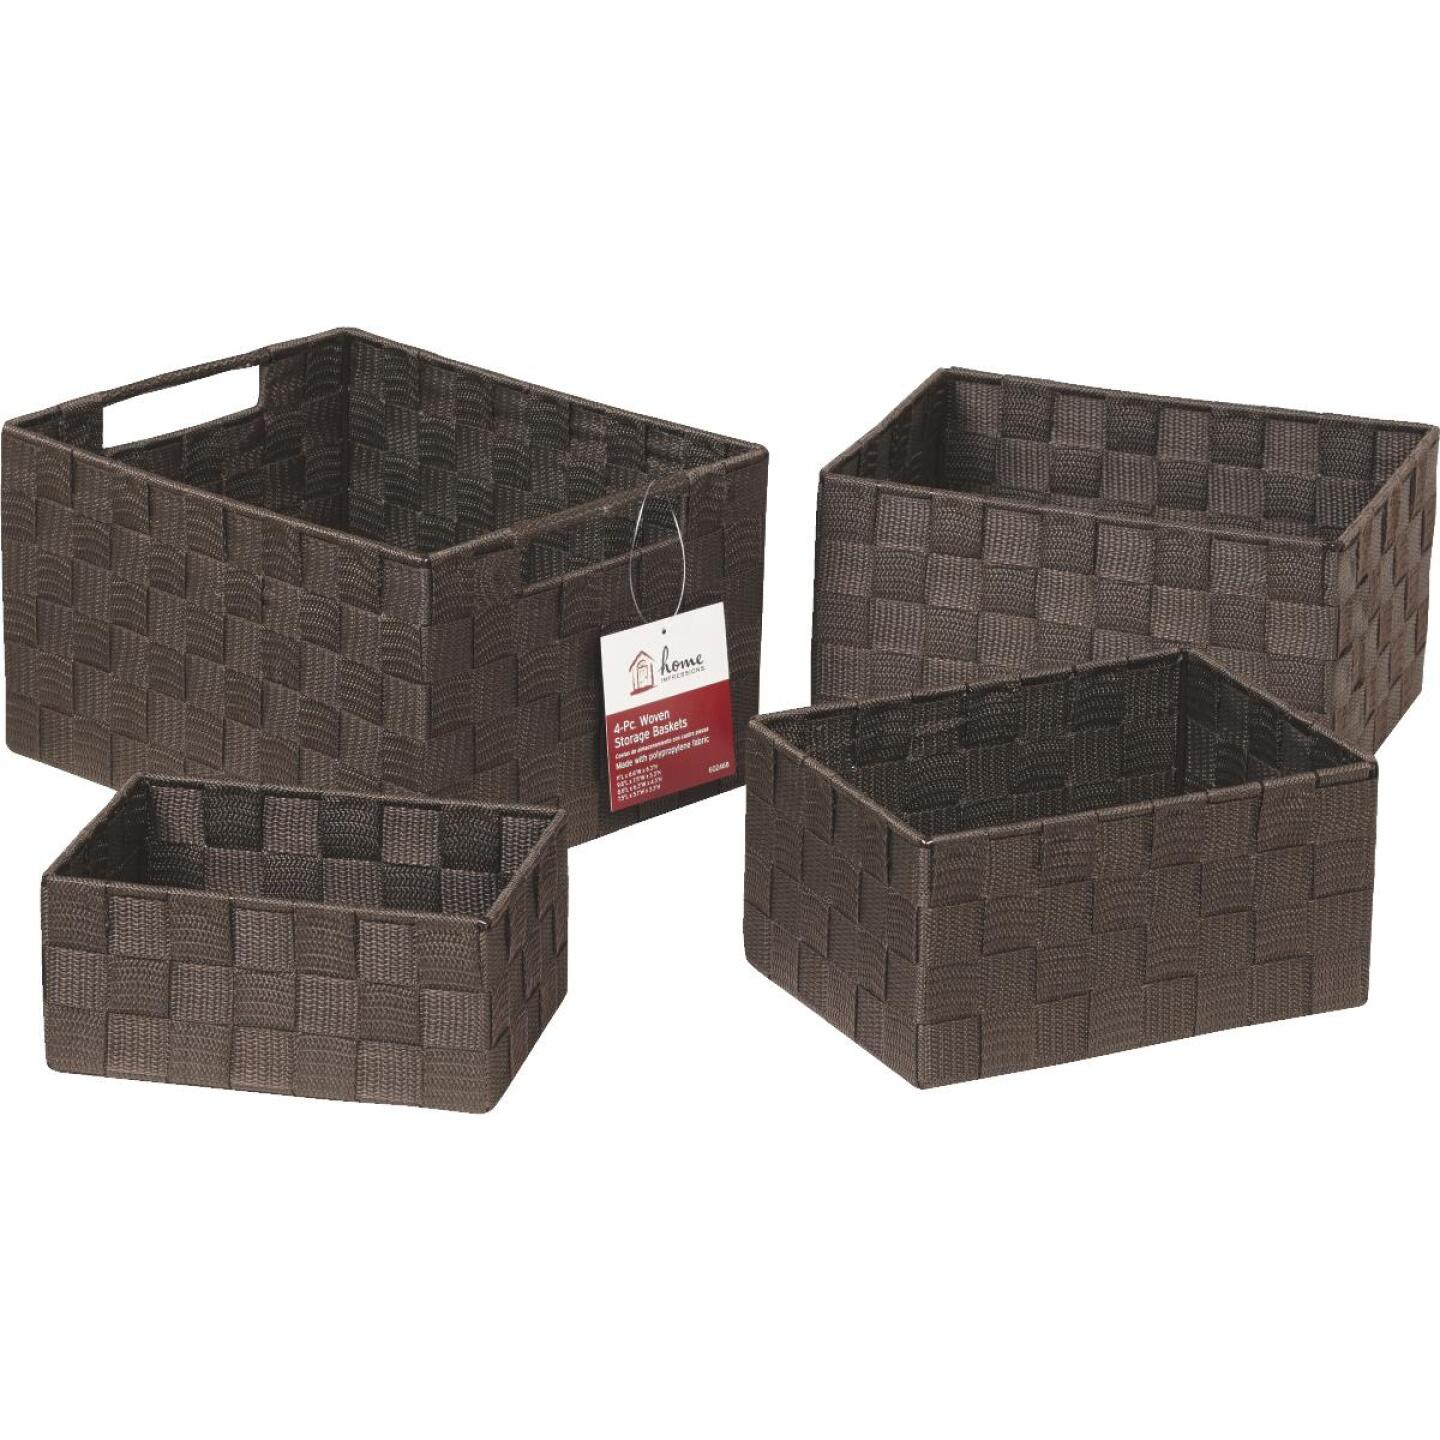 Home Impressions 4-Piece Woven Storage Basket Set, Brown Image 4